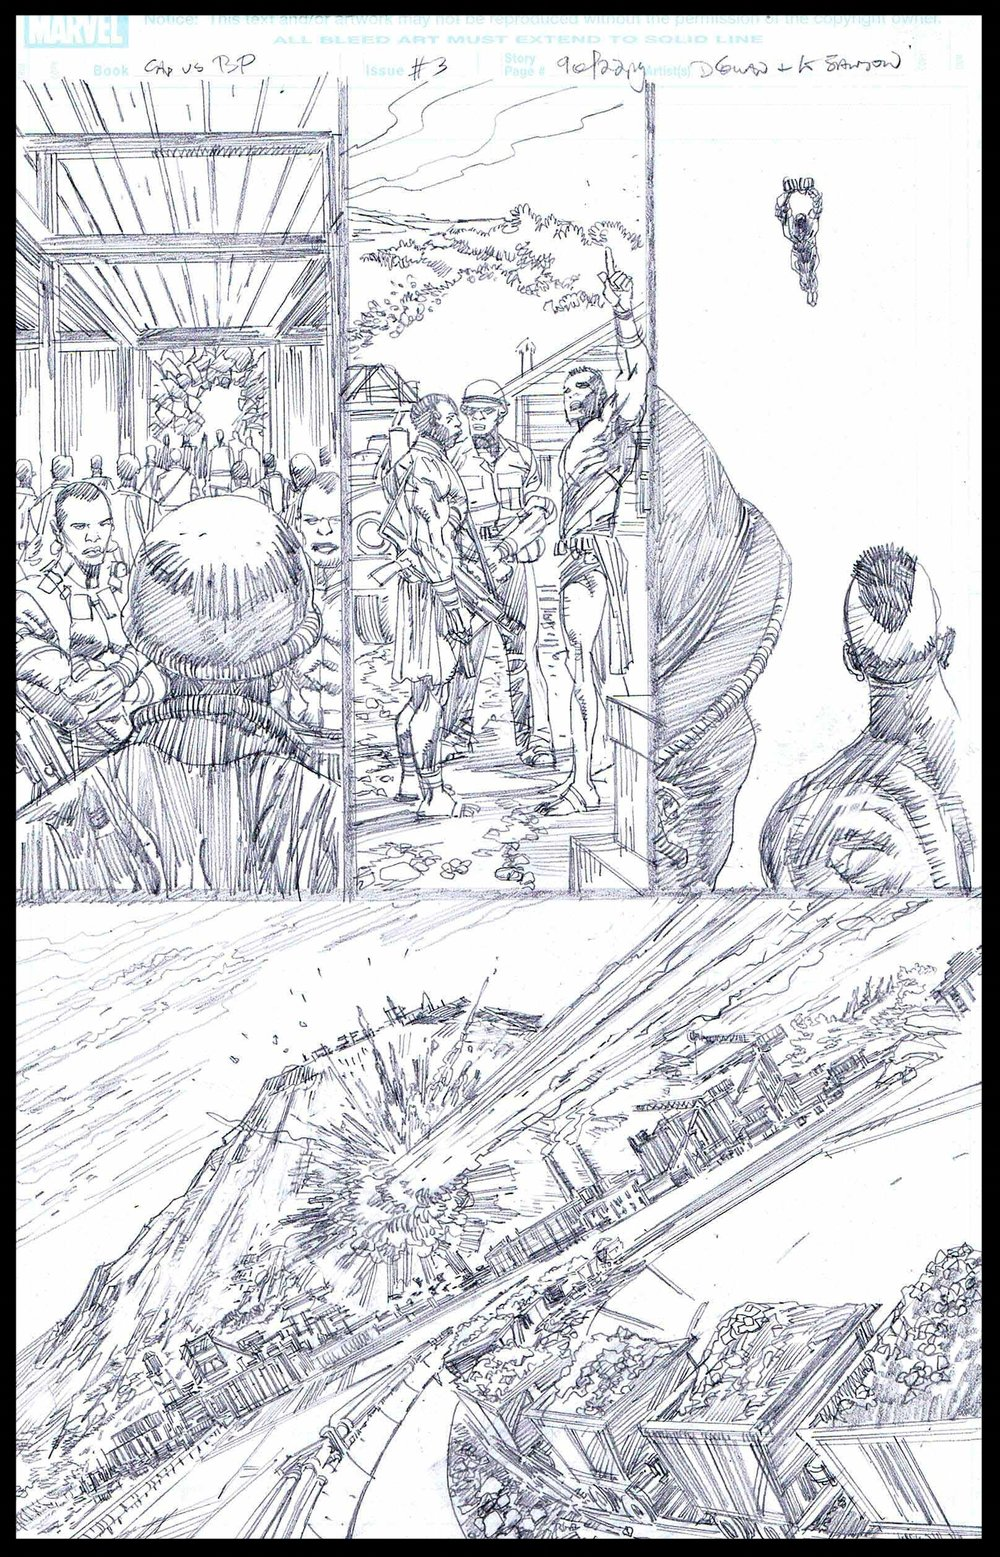 Flags of Our Fathers #3 - Page 9 - Pencils